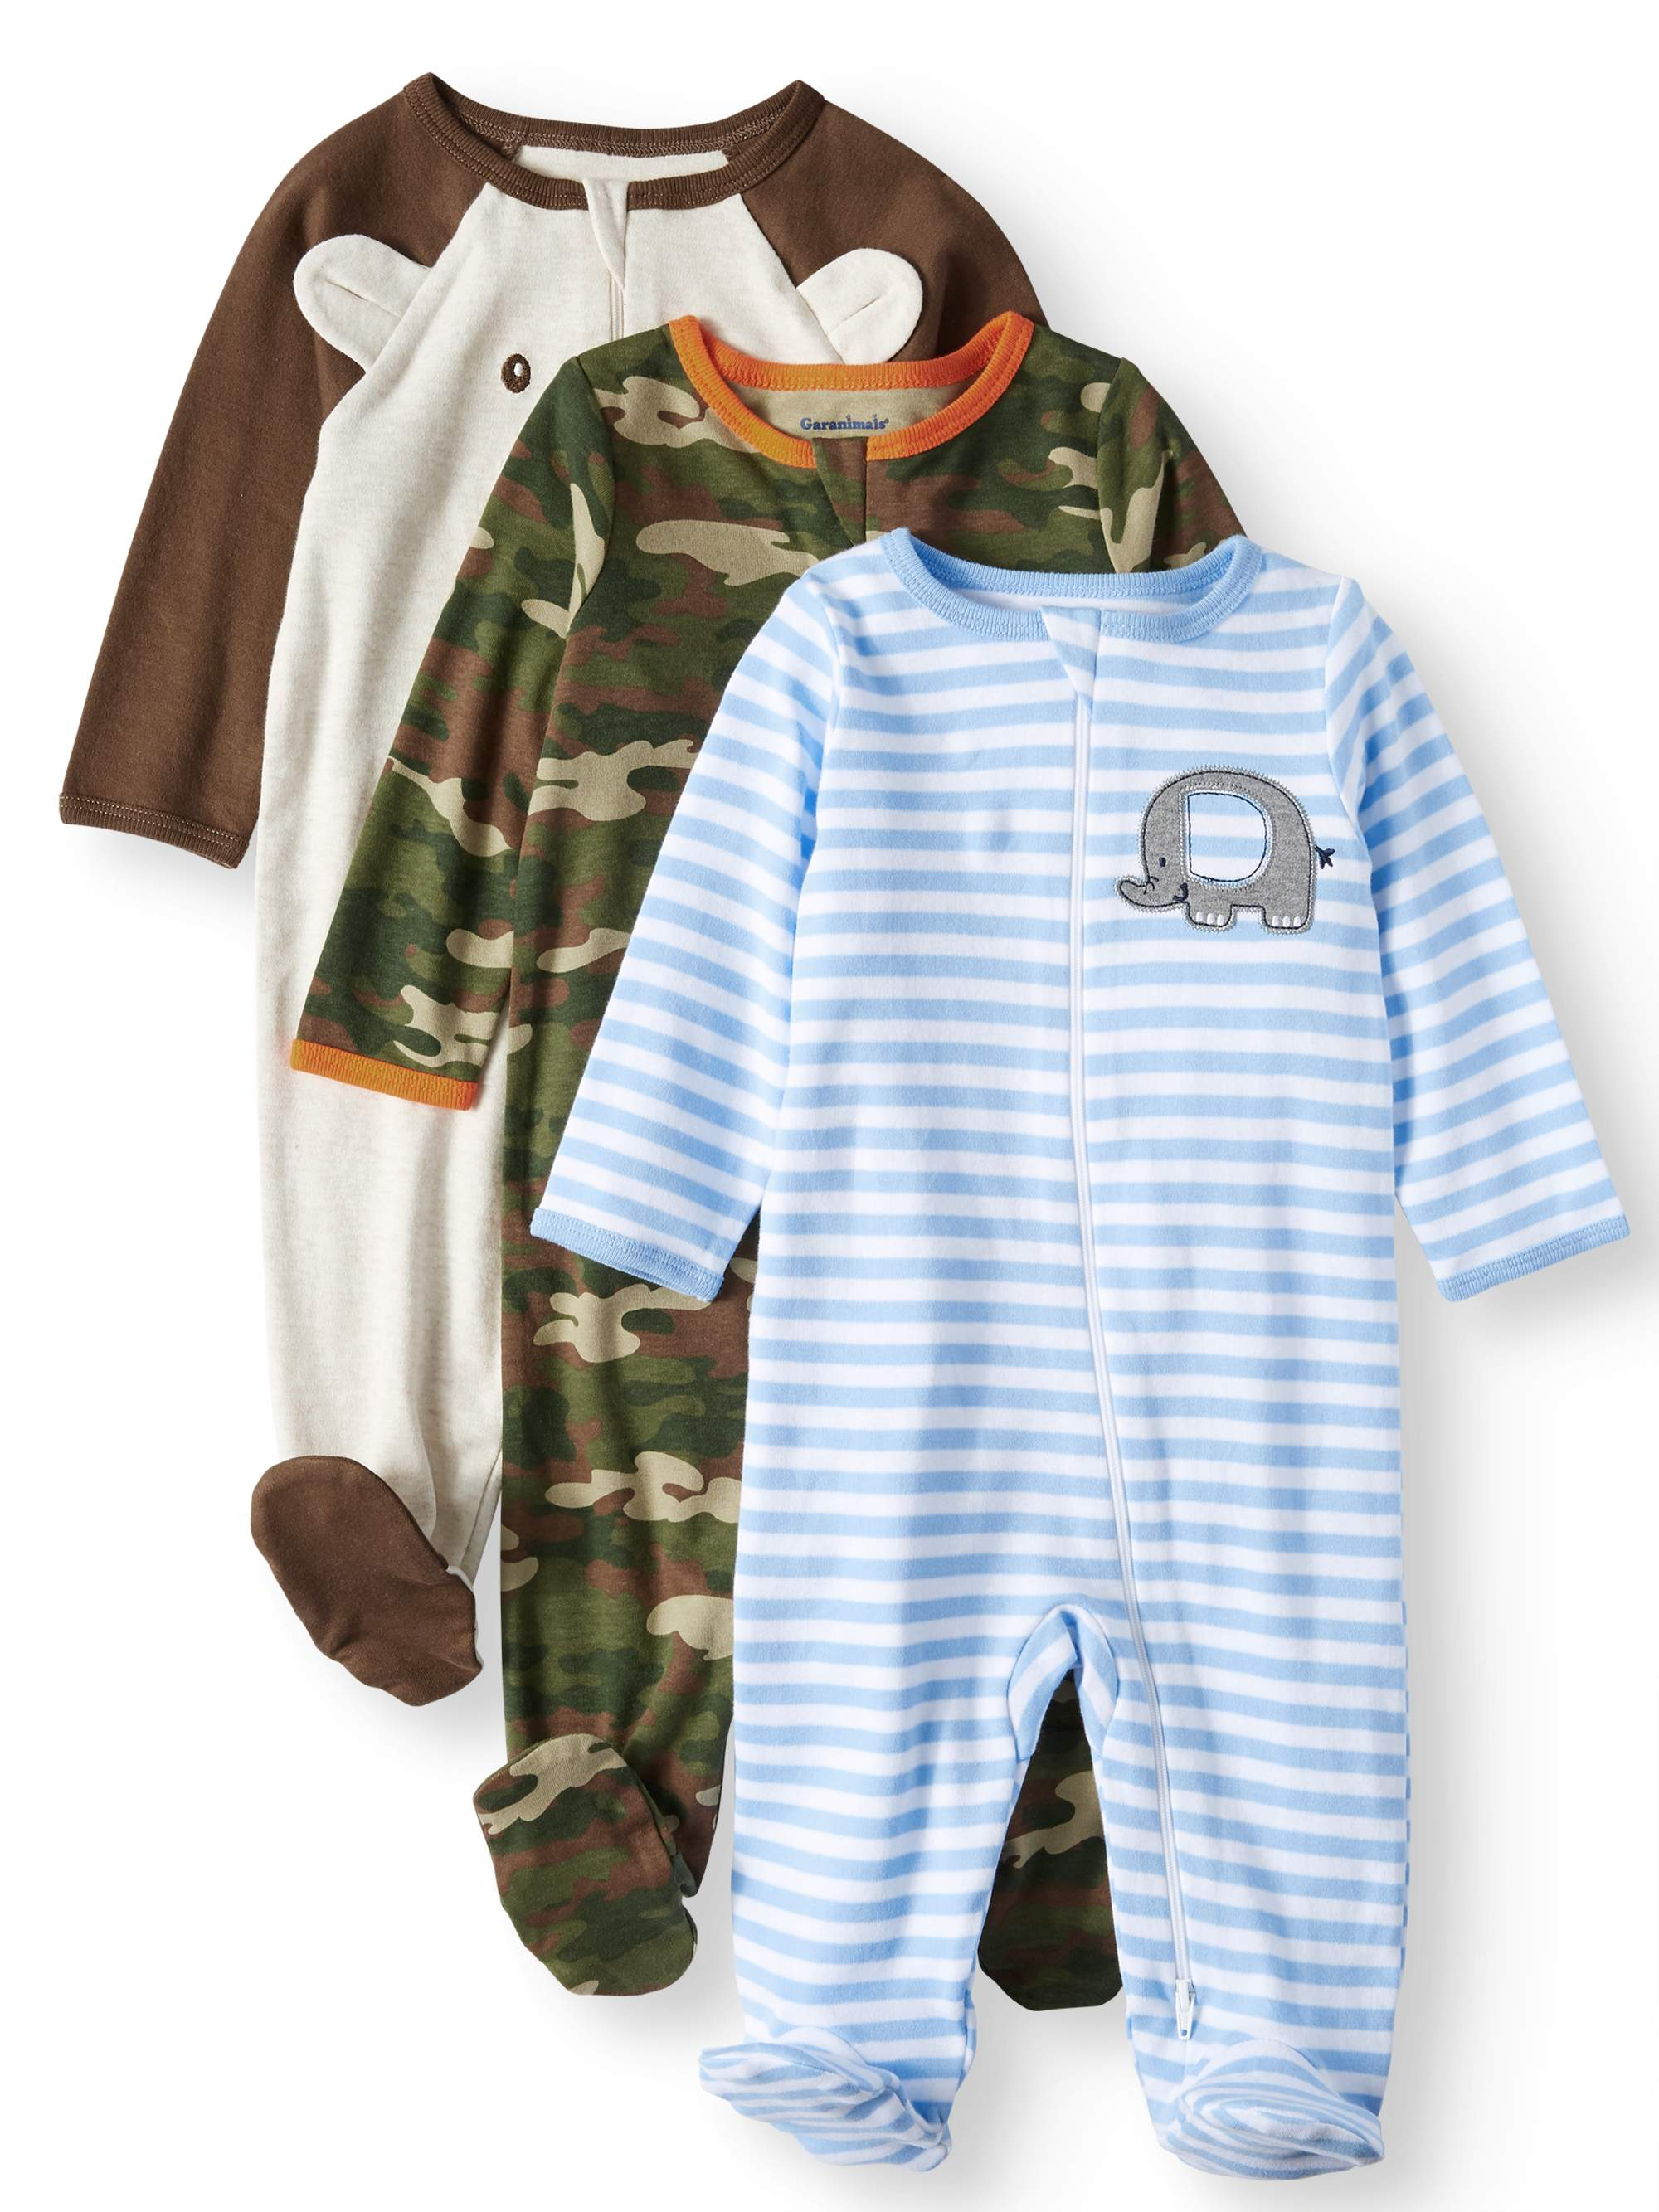 Garanimals Baby Boys' Inverted Zipper Sleep 'N Play, 3-Pack